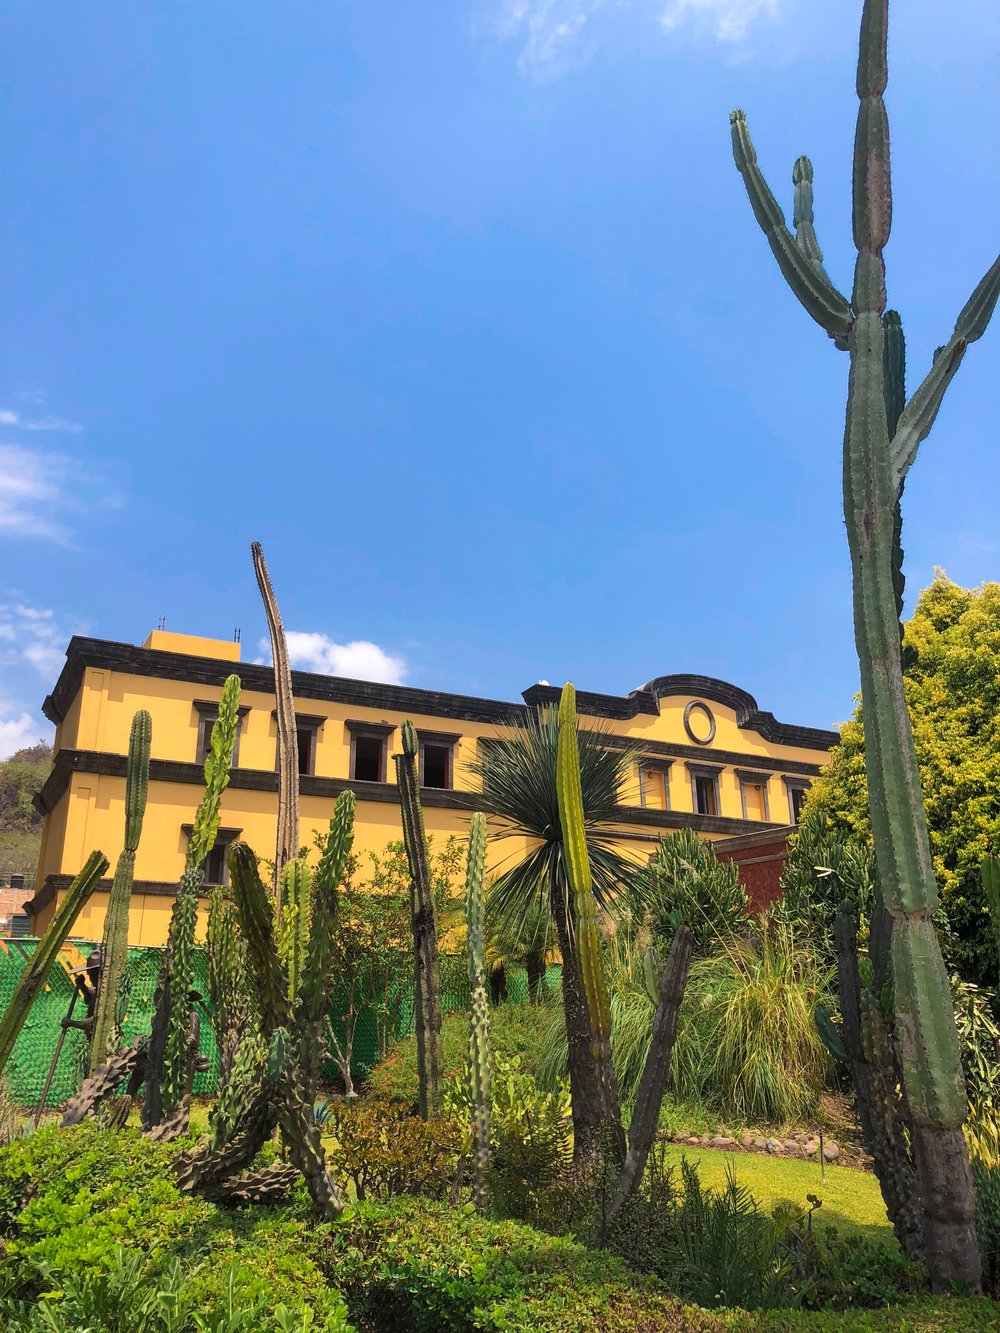 There were many cacti throughout Guadalajara. I am sure they thrive in the hot, dry weather.